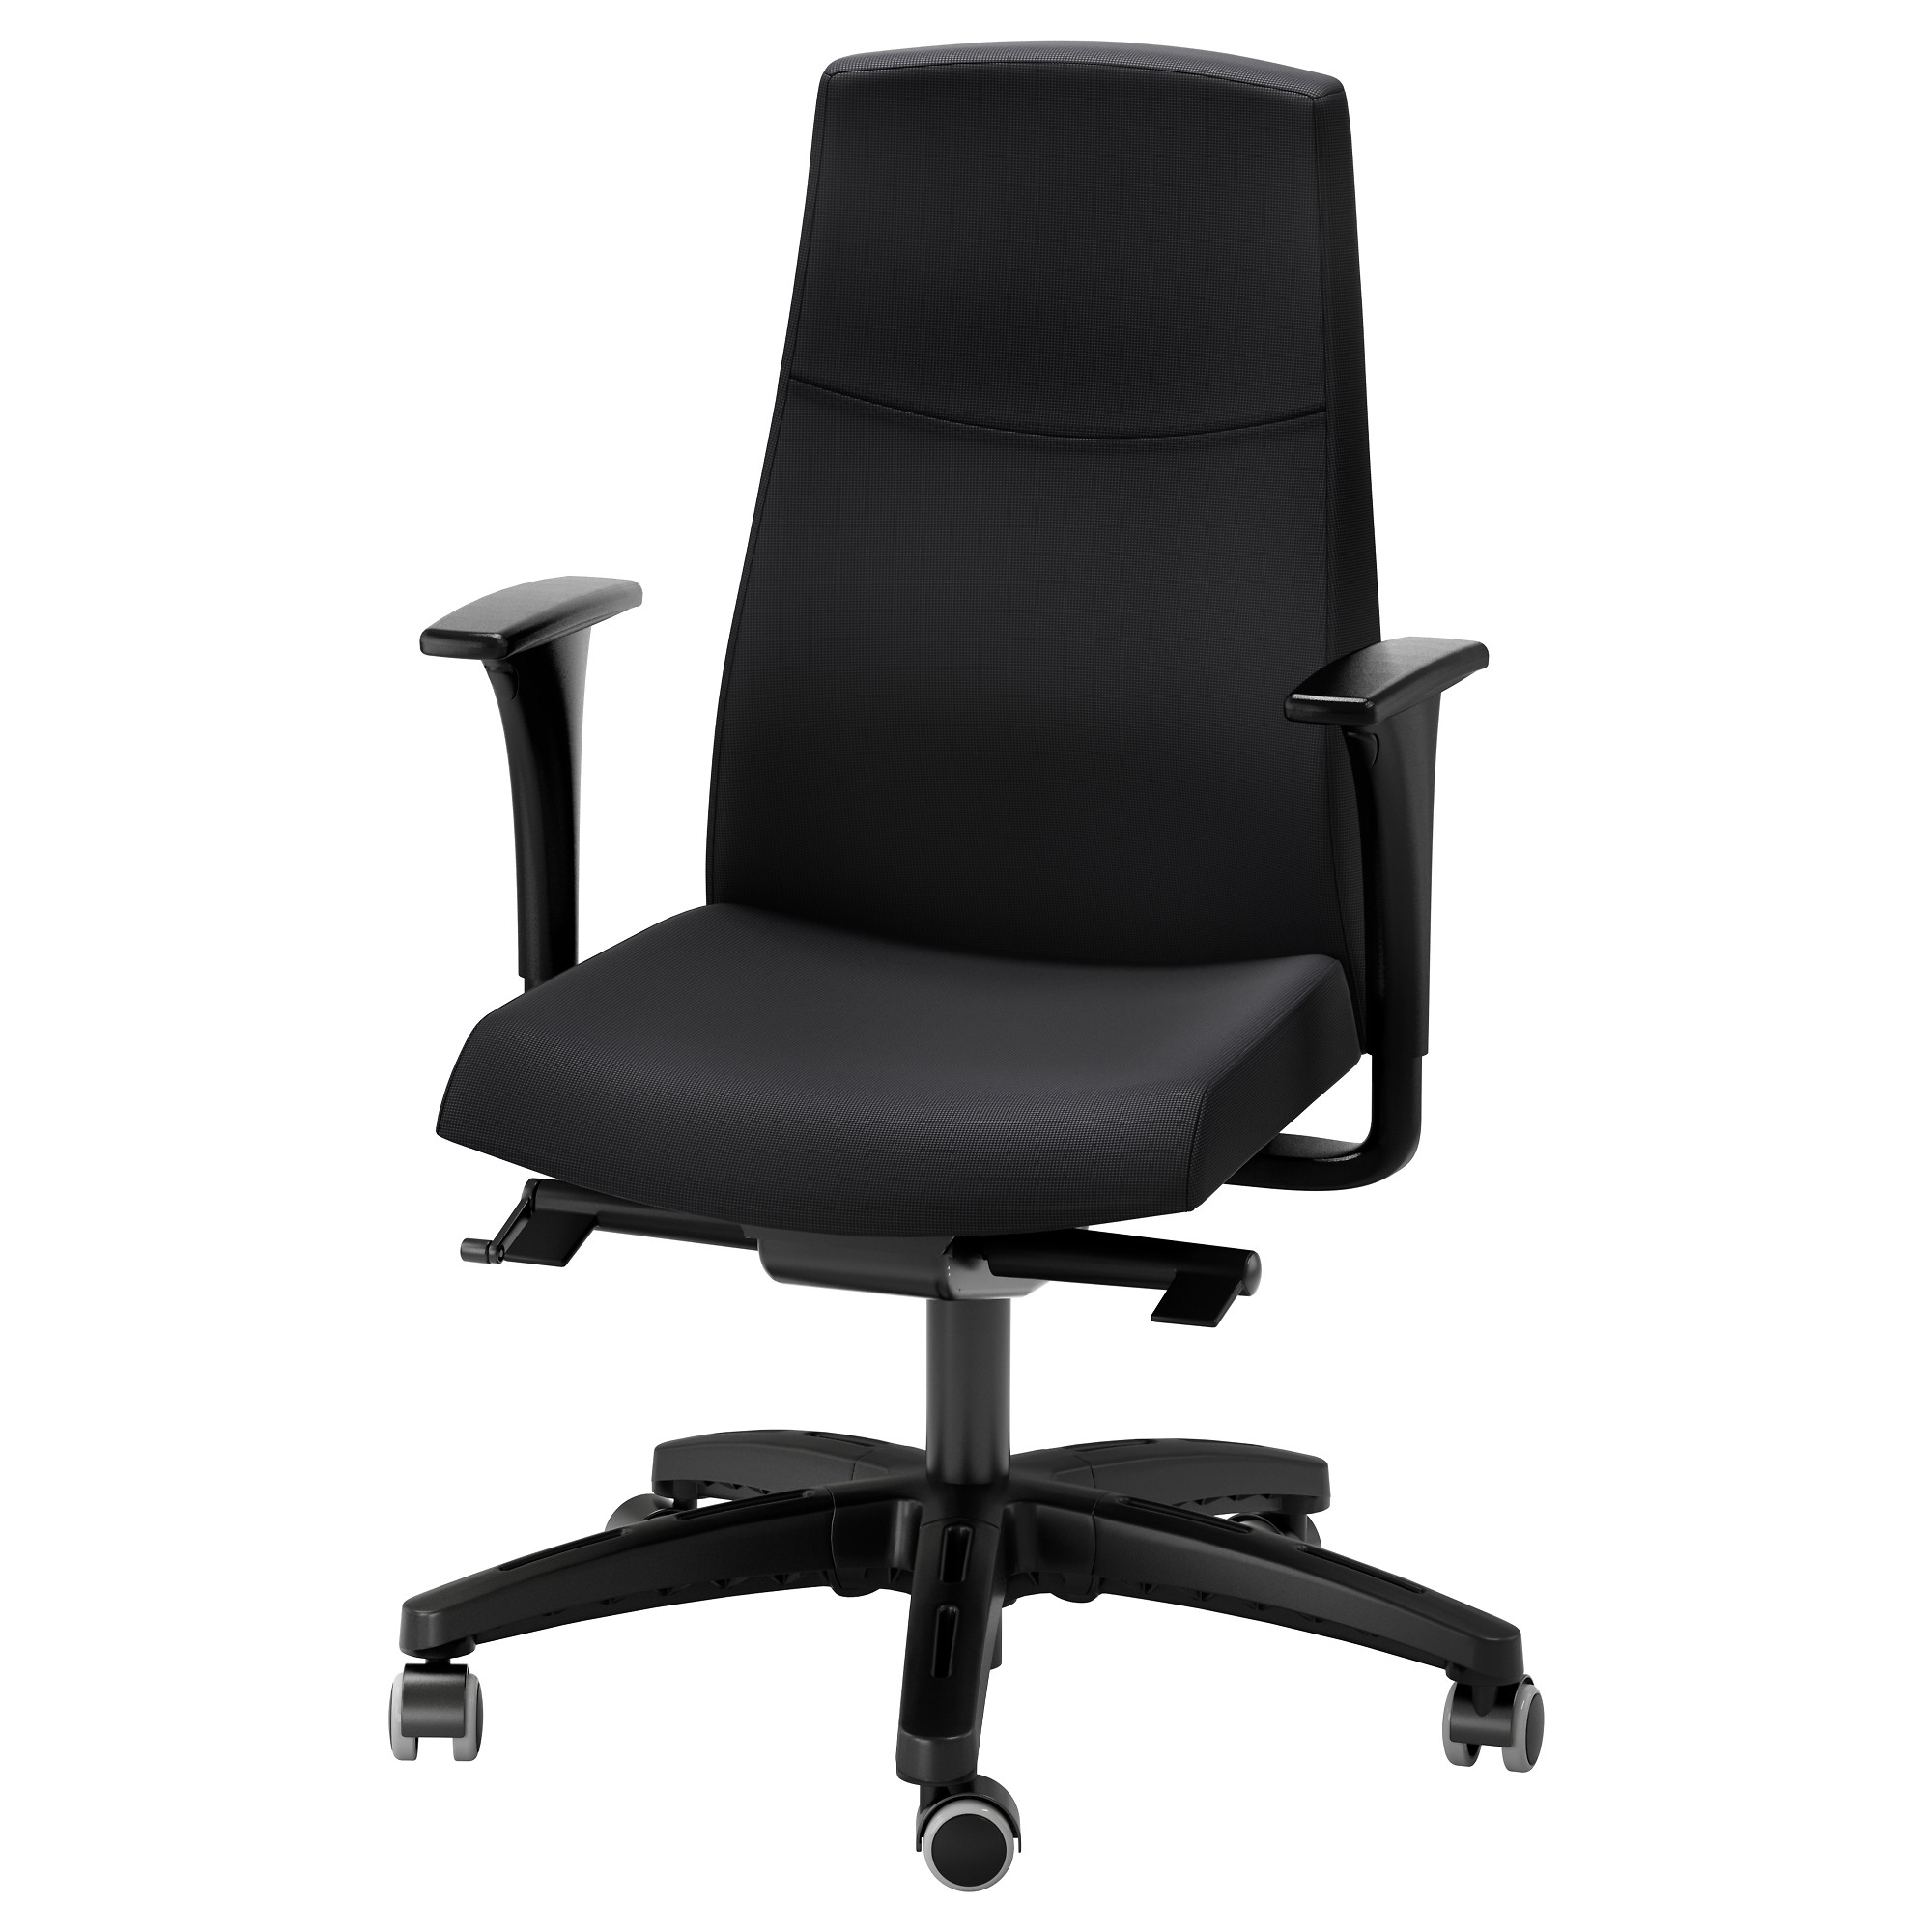 VOLMAR swivel chair with armrests black Tested for 242 lb 8 oz Width  sc 1 st  Ikea & Swivel Chairs - IKEA islam-shia.org